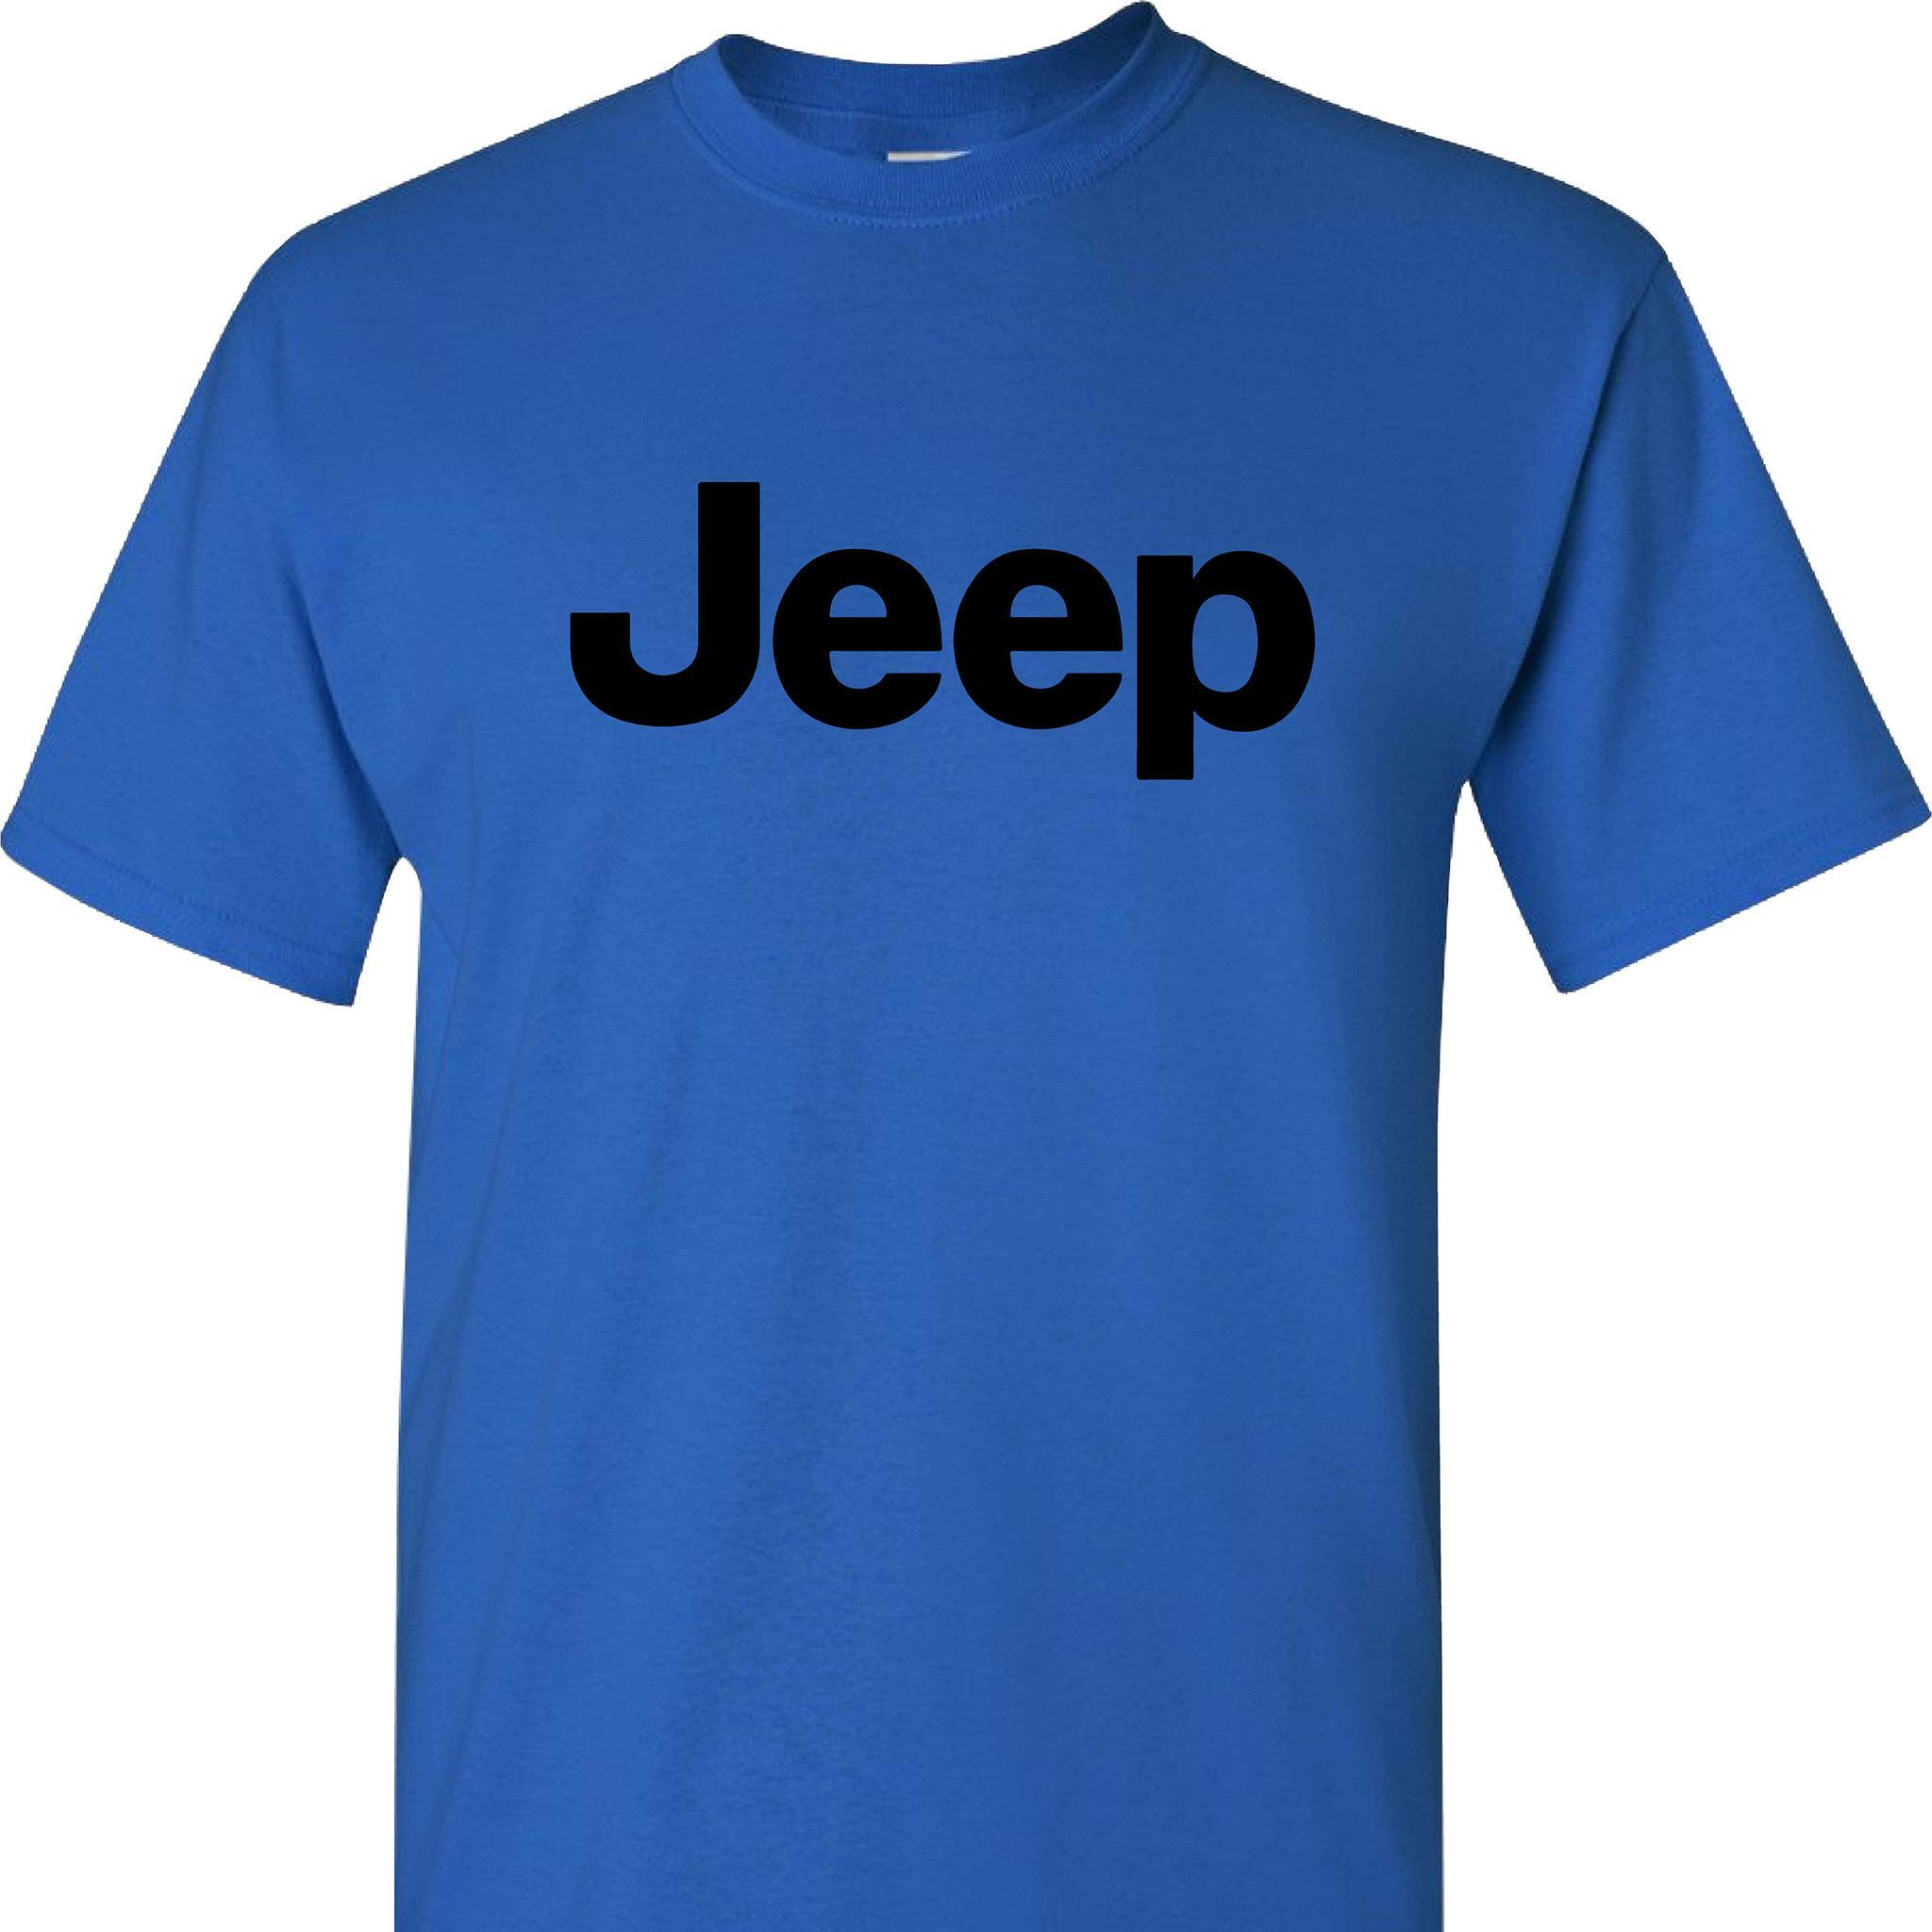 Jeep Logo On A Short Sleeve Blue T Shirt Jeeps Short Sleeves - Jeep logo t shirt